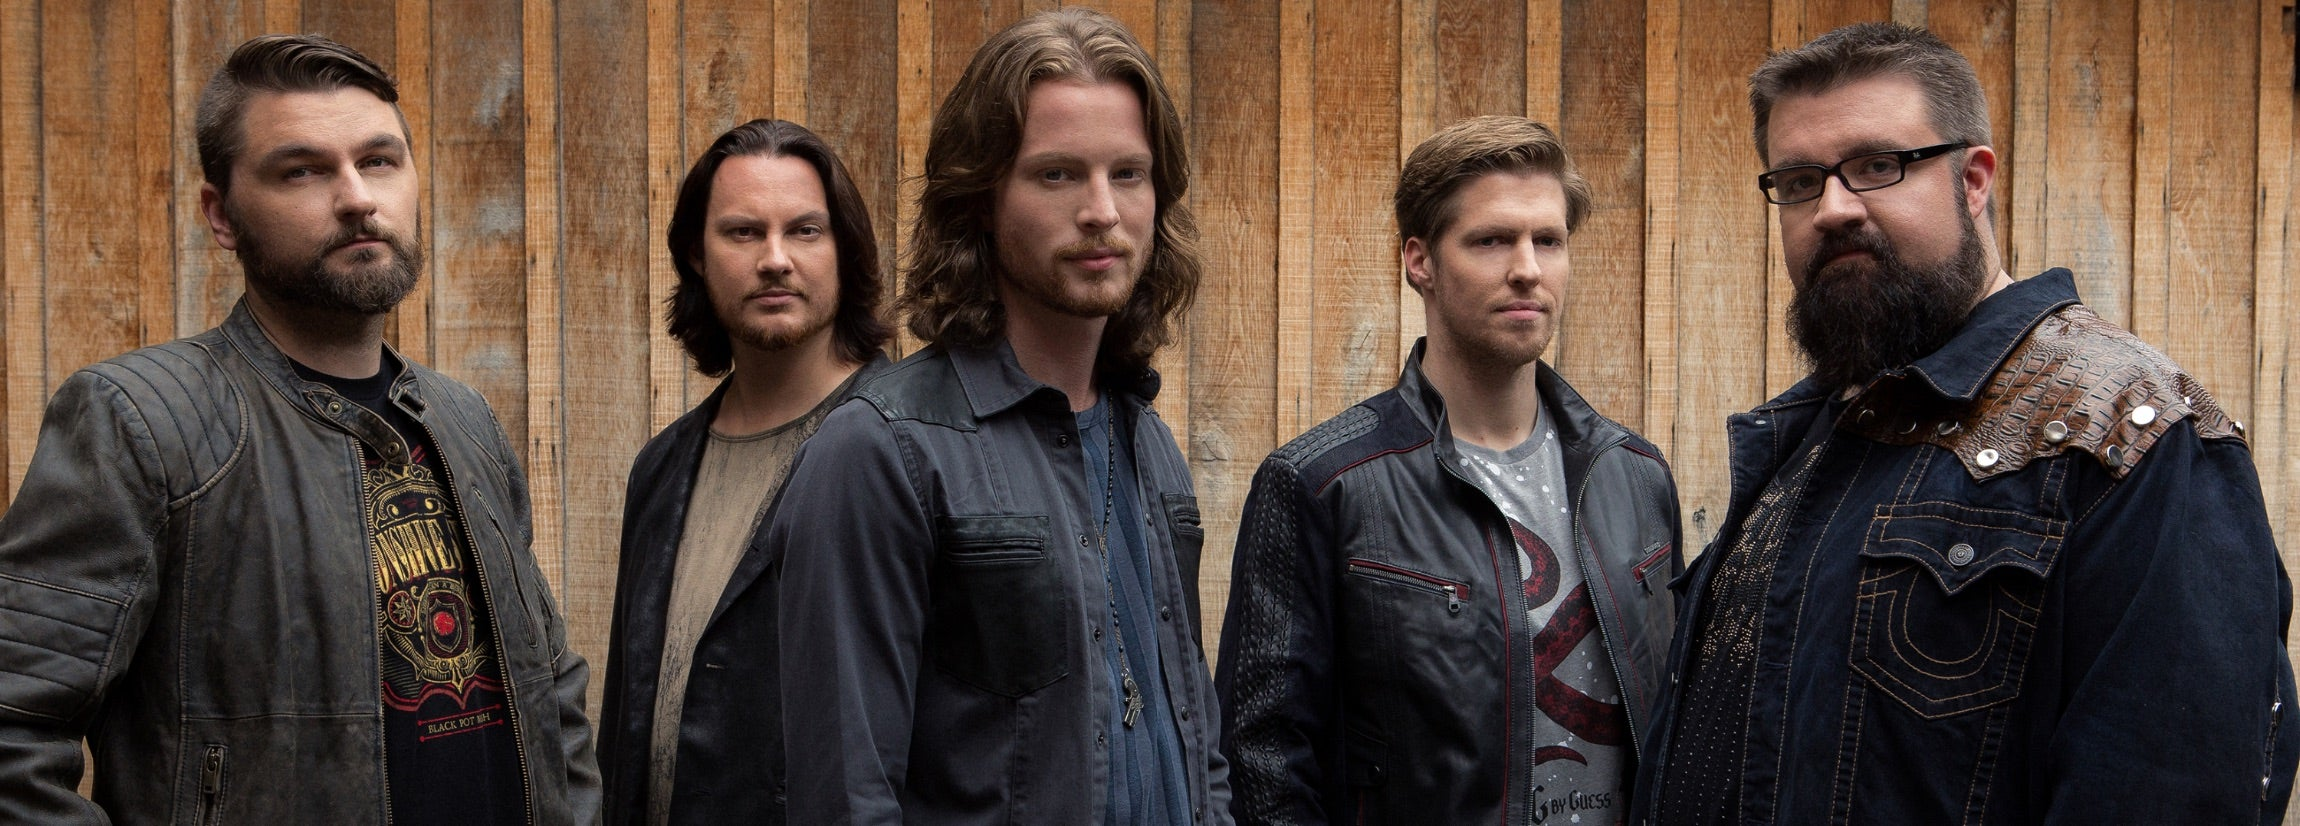 home free a country christmas tour oxford performing arts center - Home Free Christmas